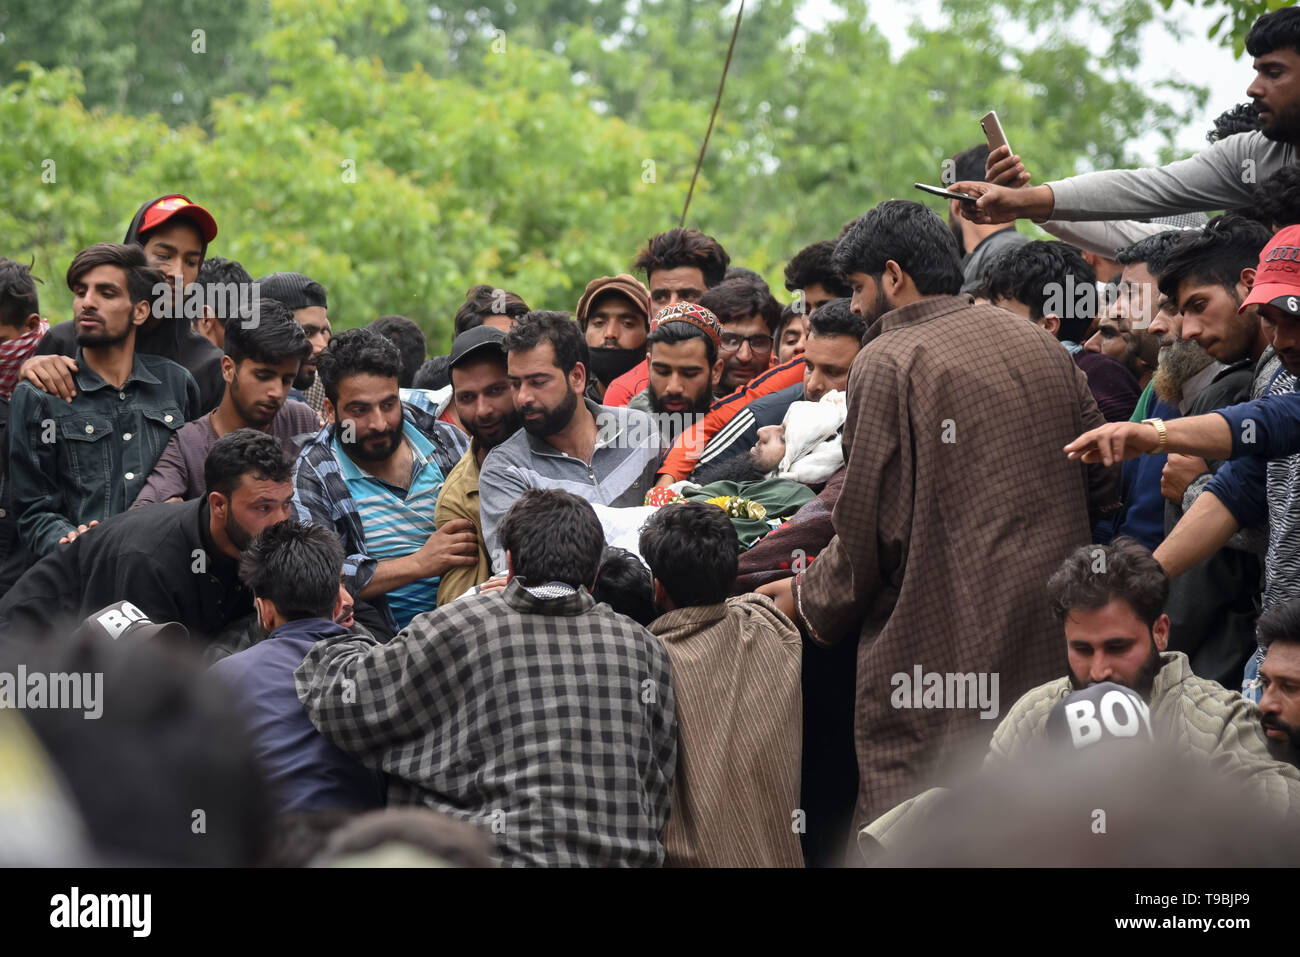 (EDITOR'S NOTE: Image depicts death) Kashmiri villagers seen carrying dead body of JeM Militant Naseer Ahmed Pandit during his funeral at his residence in Pulwama, South of Srinagar. Three militants, an army man and a civilian were killed in a fierce gunfight that broke out in Dalipora area of Pulwama town in south Kashmir on Thursday morning. - Stock Image